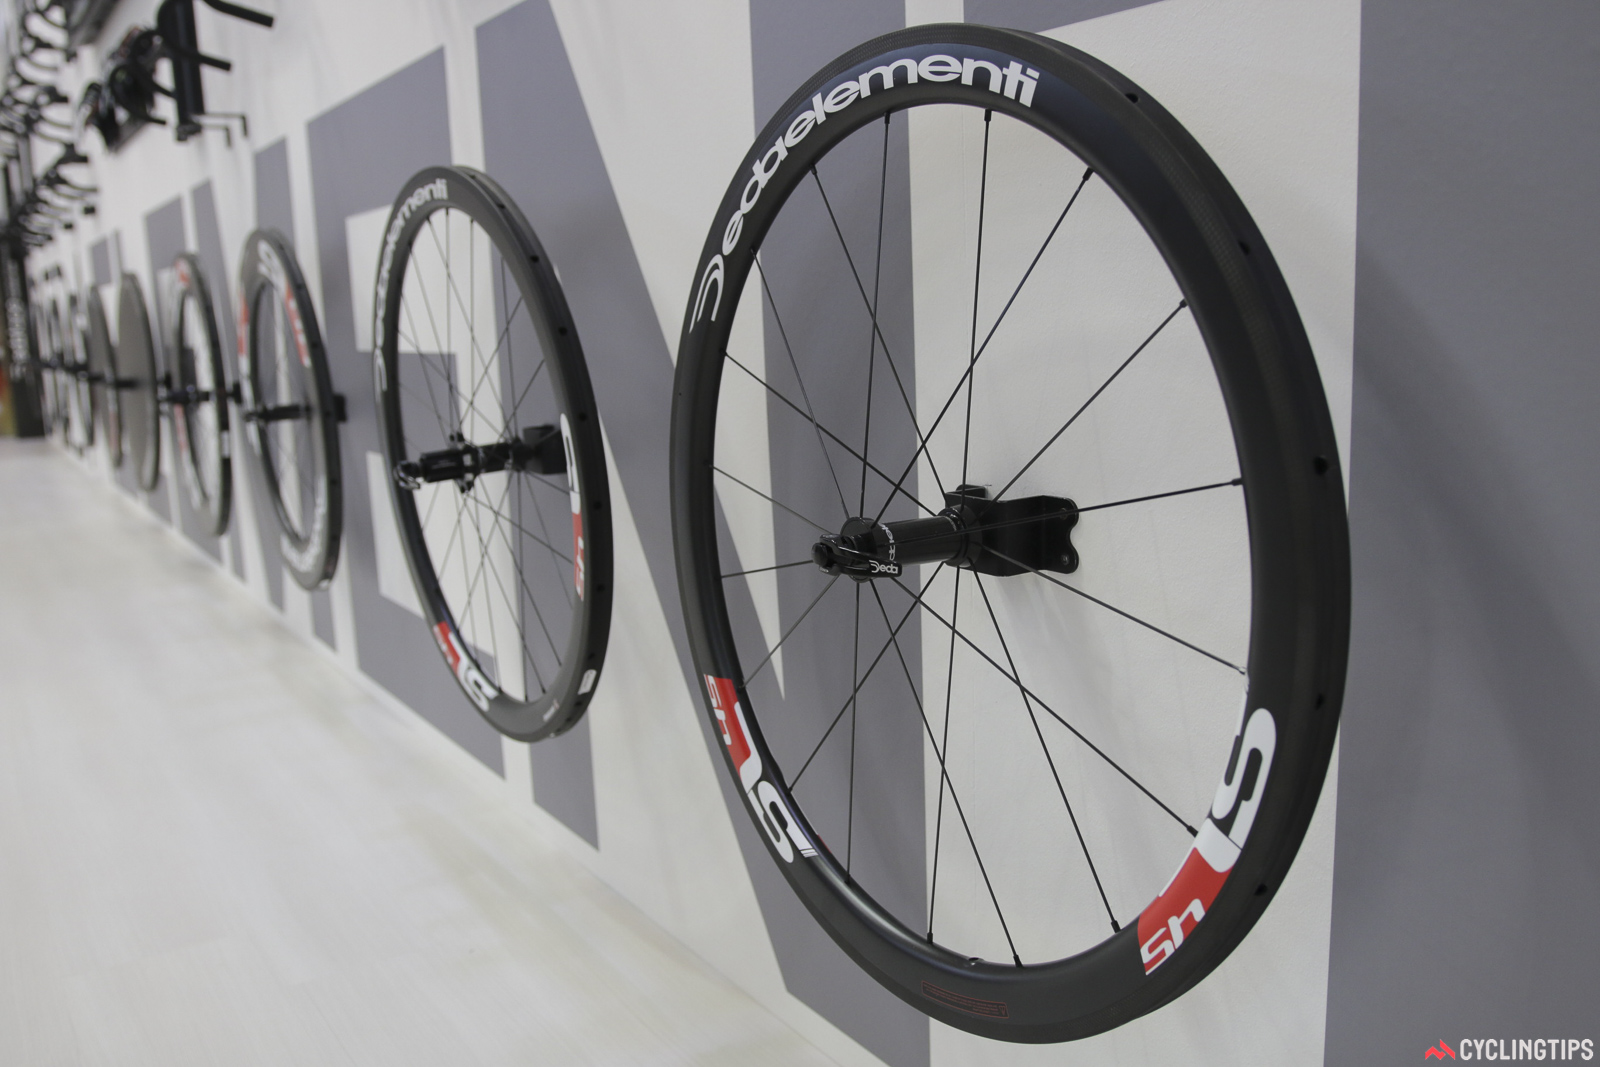 Deda's wheel range continues to grow. The carbon clincher options are still in testing, but tubular options in 30, 45 and 88mm depths are available. The shallowest version is quoted at 1290g, with the middle 45mm version at a claimed 1390g. Rims are 25mm wide (external), and the straight-pull hubs hide Enduro ceramic bearings. Photo: David Rome.